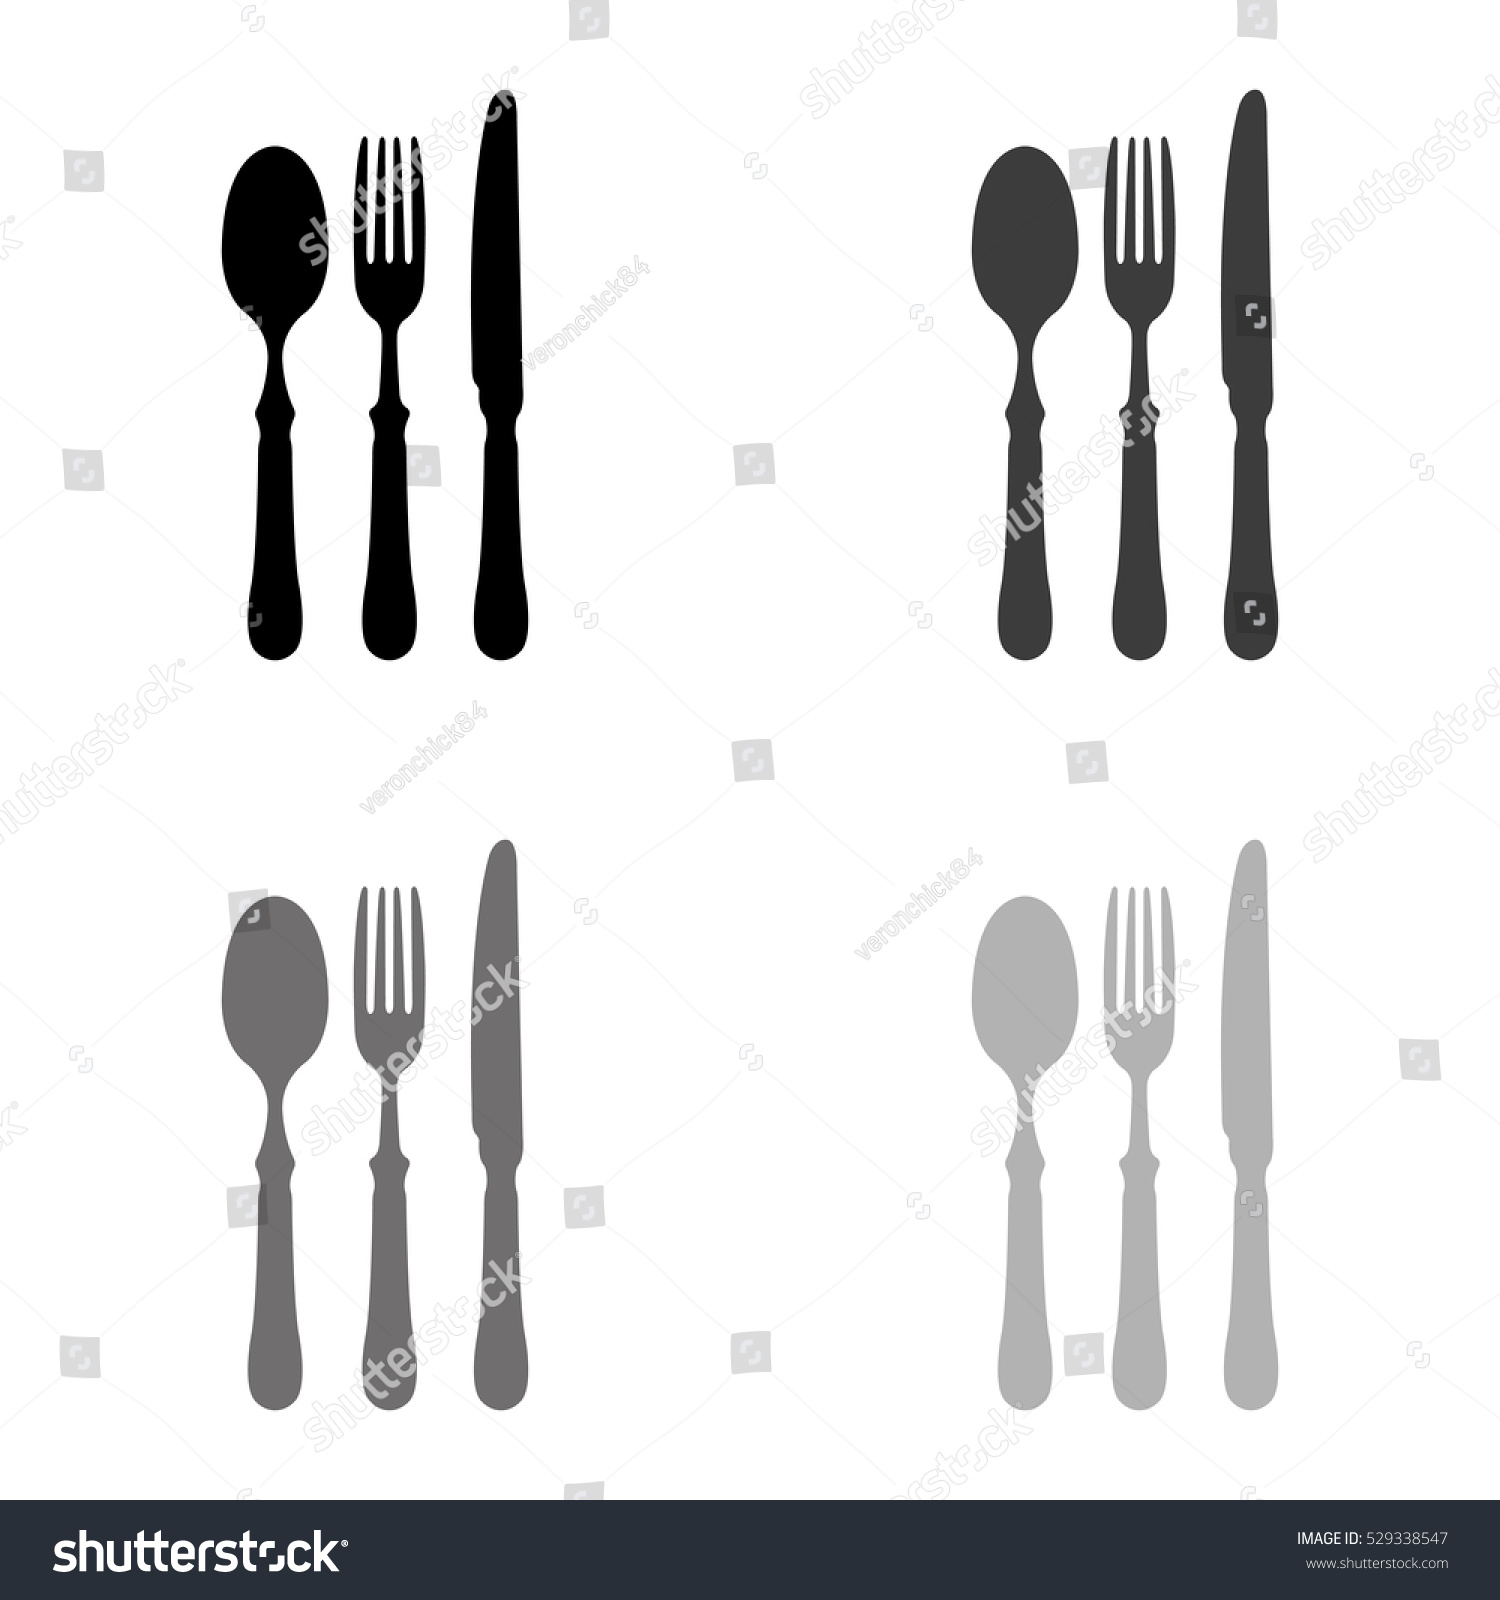 fork spoon knife black vector icon stock vector 529338547